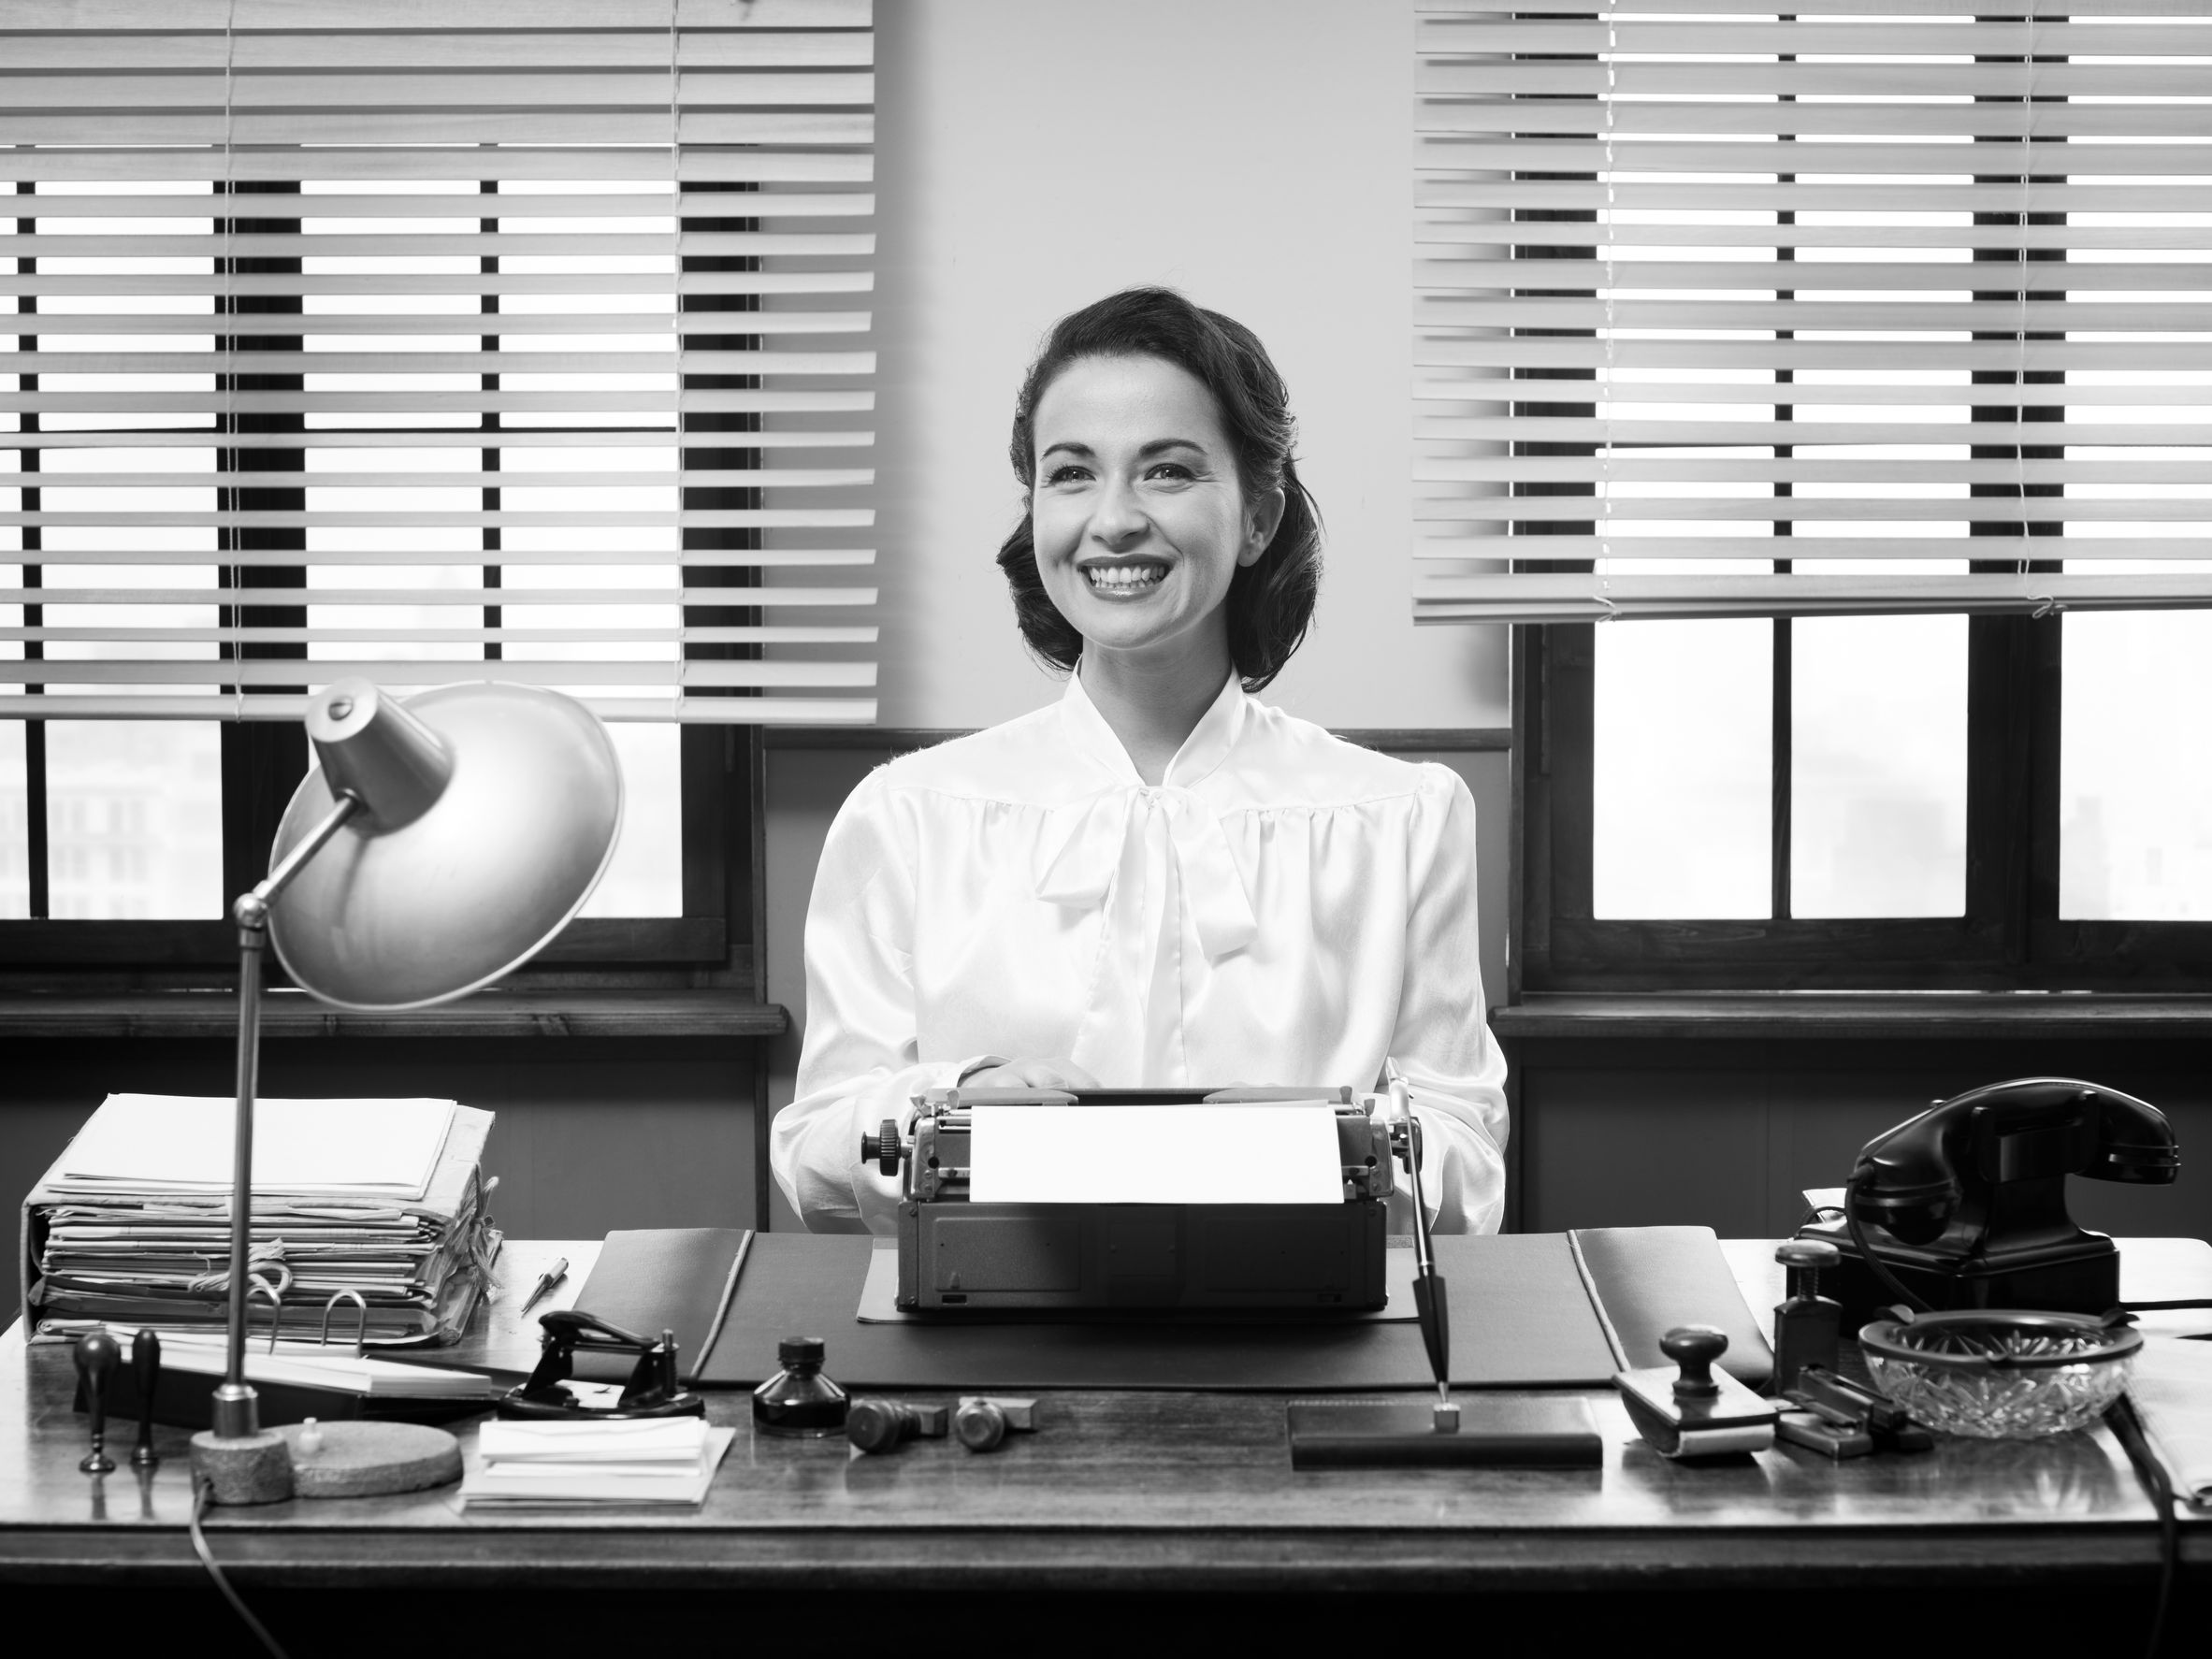 34030162 - cheerful vintage secretary working at office desk and smiling at camera